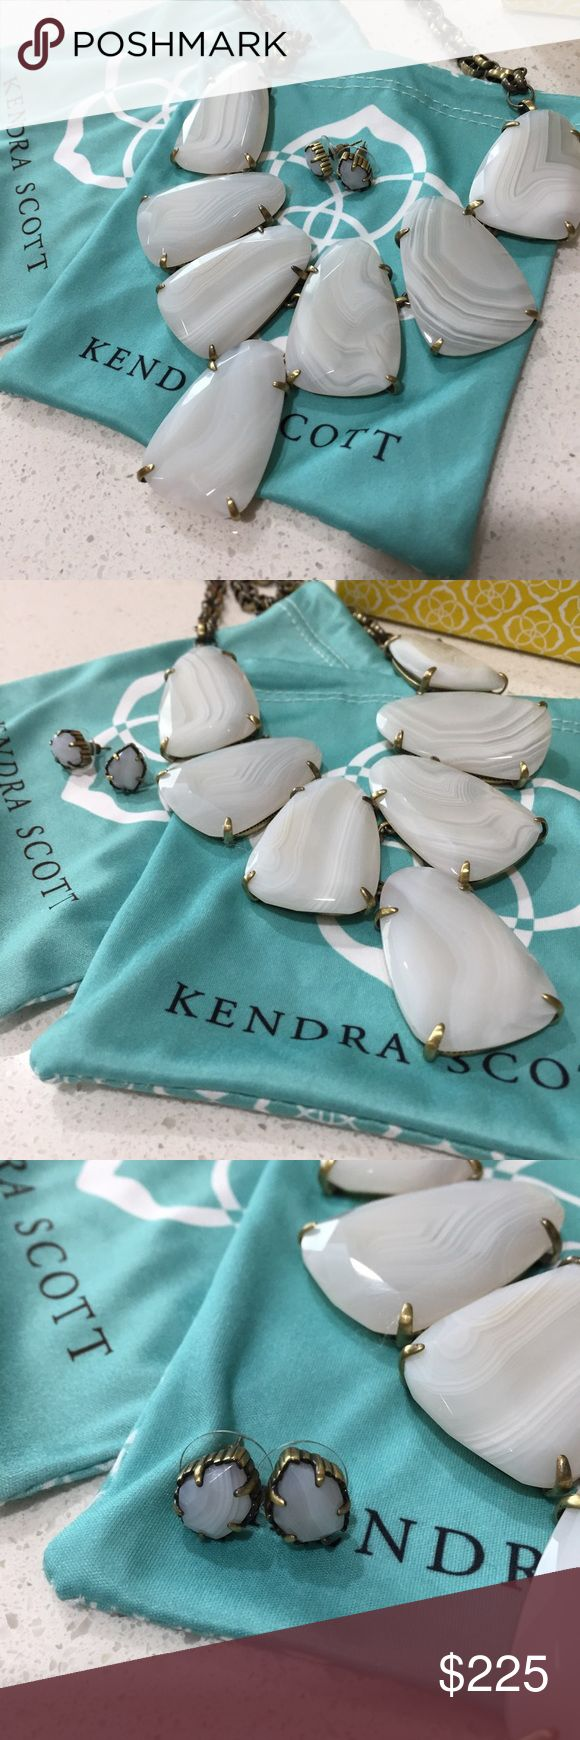 Kendra Scott Harlow and Tessa Kendra Scott Harlow necklace and Tessa earrings in white banded agate and antique brass, EUC. Earrings were only worn once! Includes two dust bags and one big gift box. Kendra Scott Jewelry Necklaces